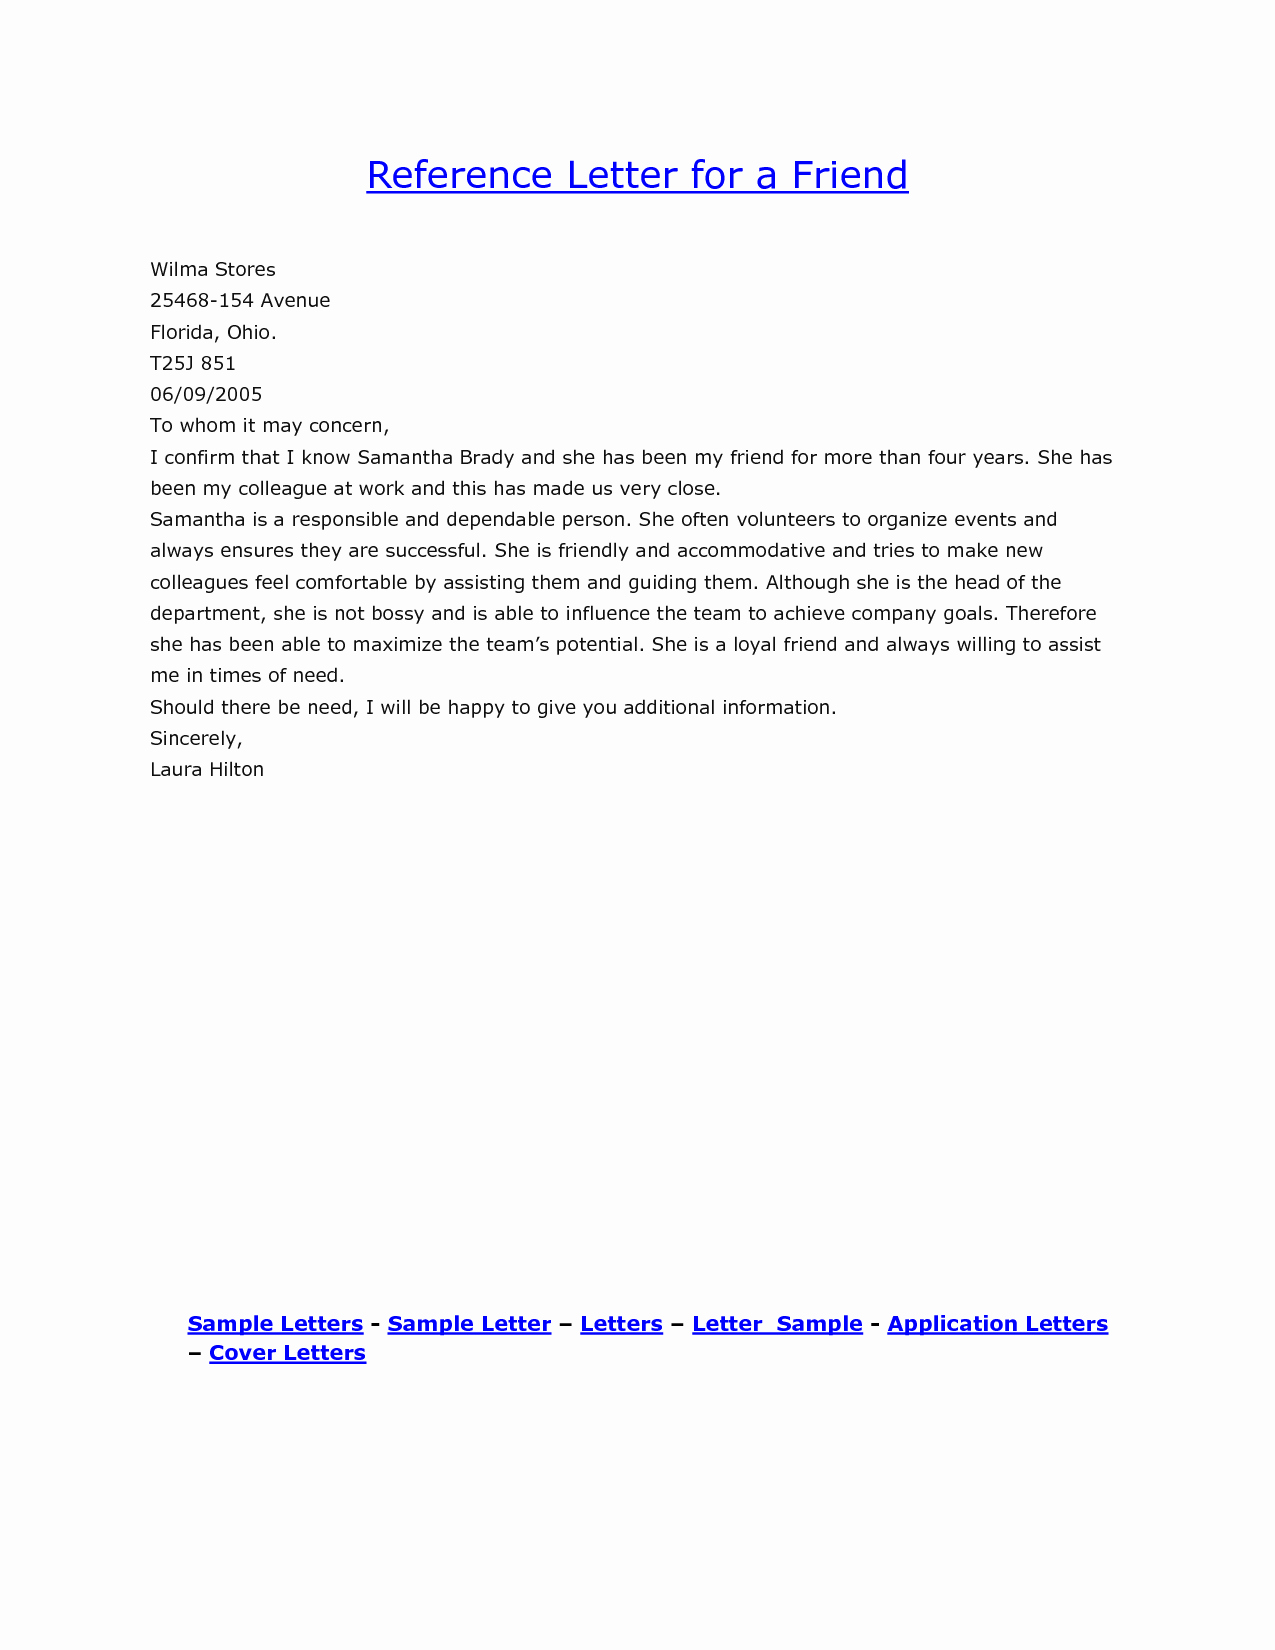 Letter Of Recommendation From Friend Beautiful Sample Reference Letter for A Close Friend Cover Letter